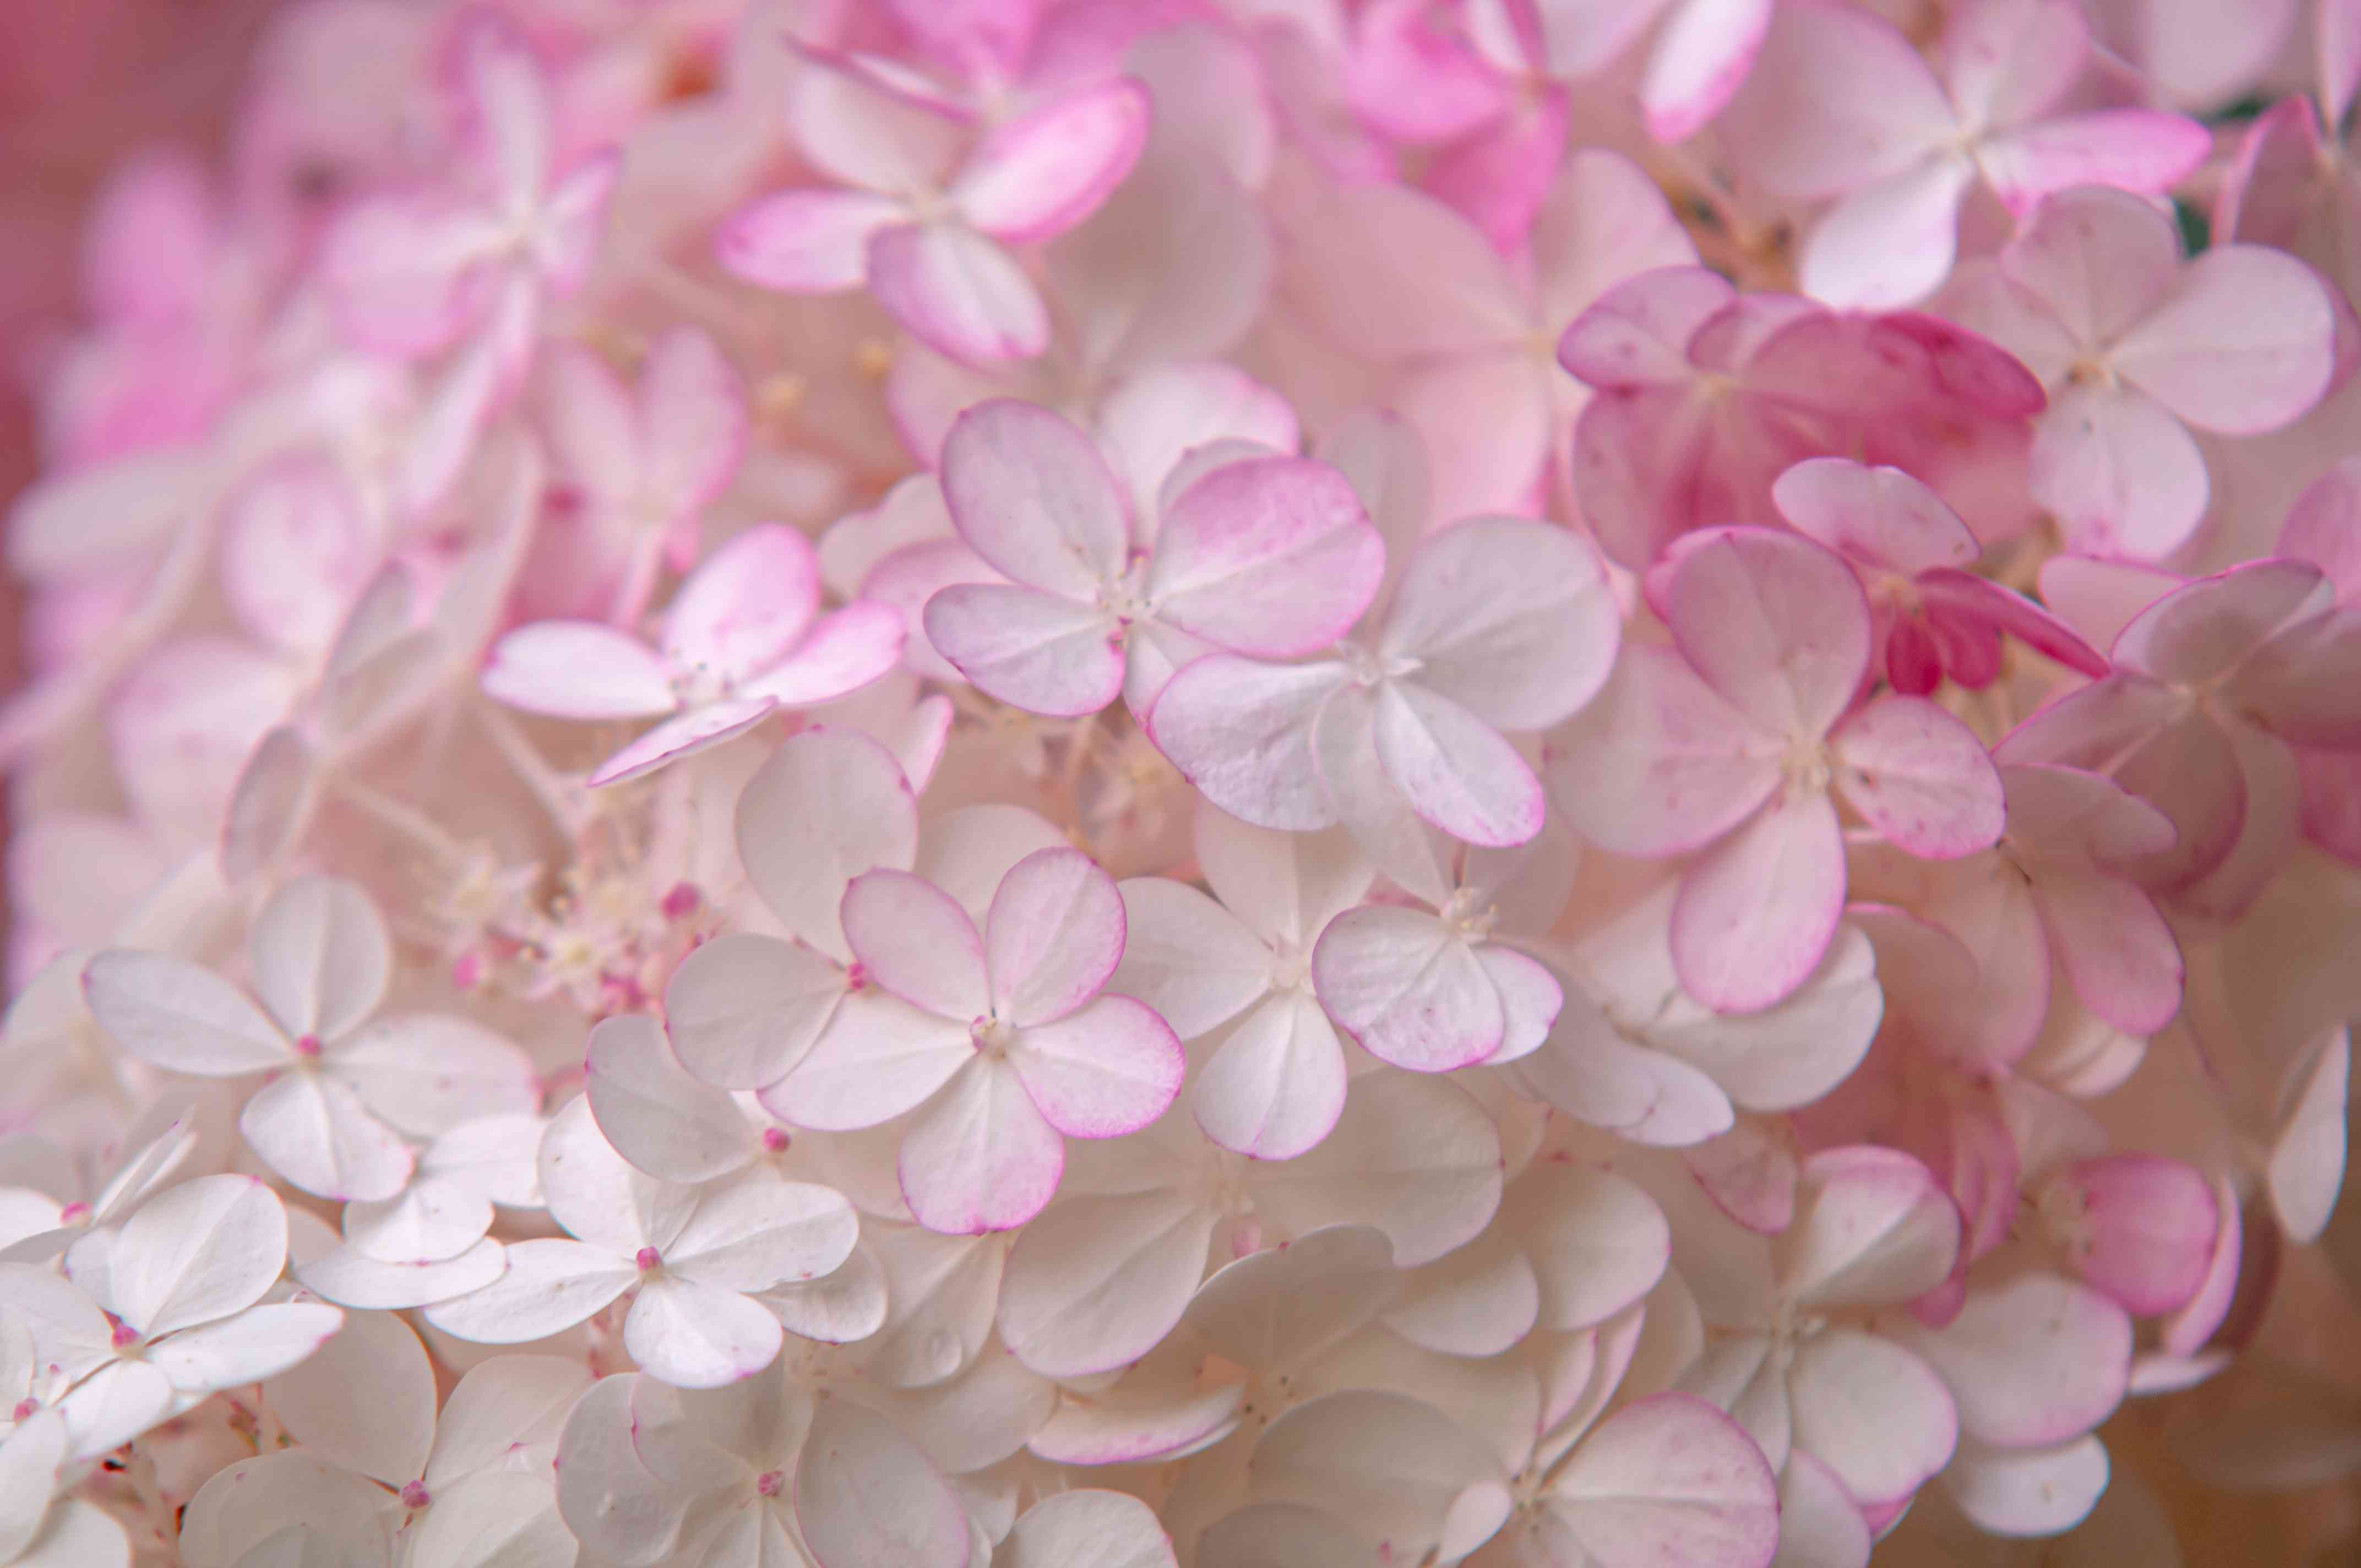 Strawberry vanilla hydrangea with bi-colored flowers clustered with white and pink petals closeup